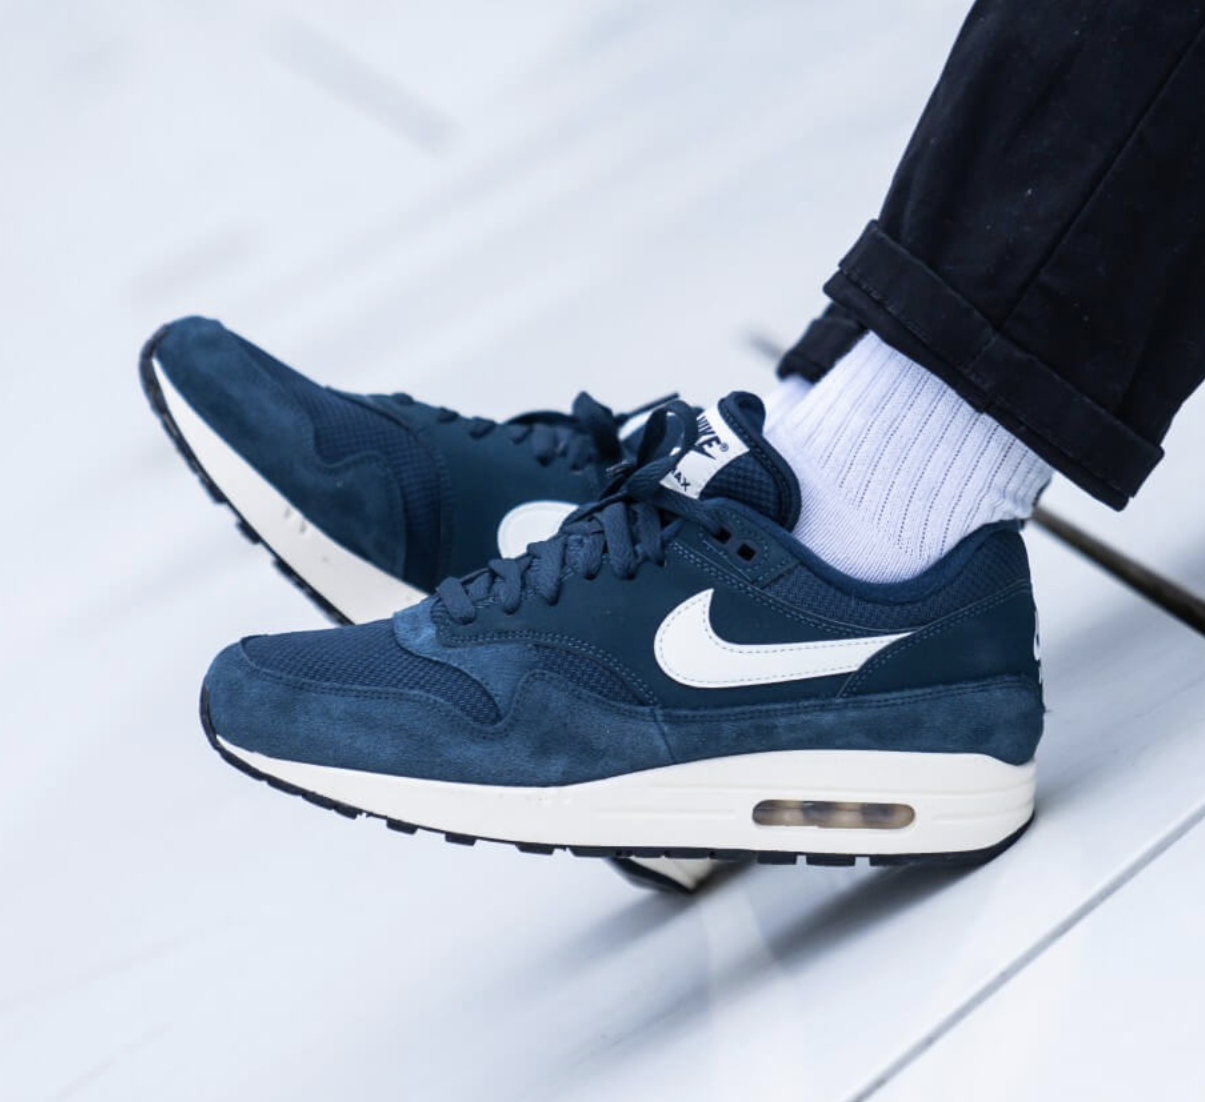 nike air max one kopen